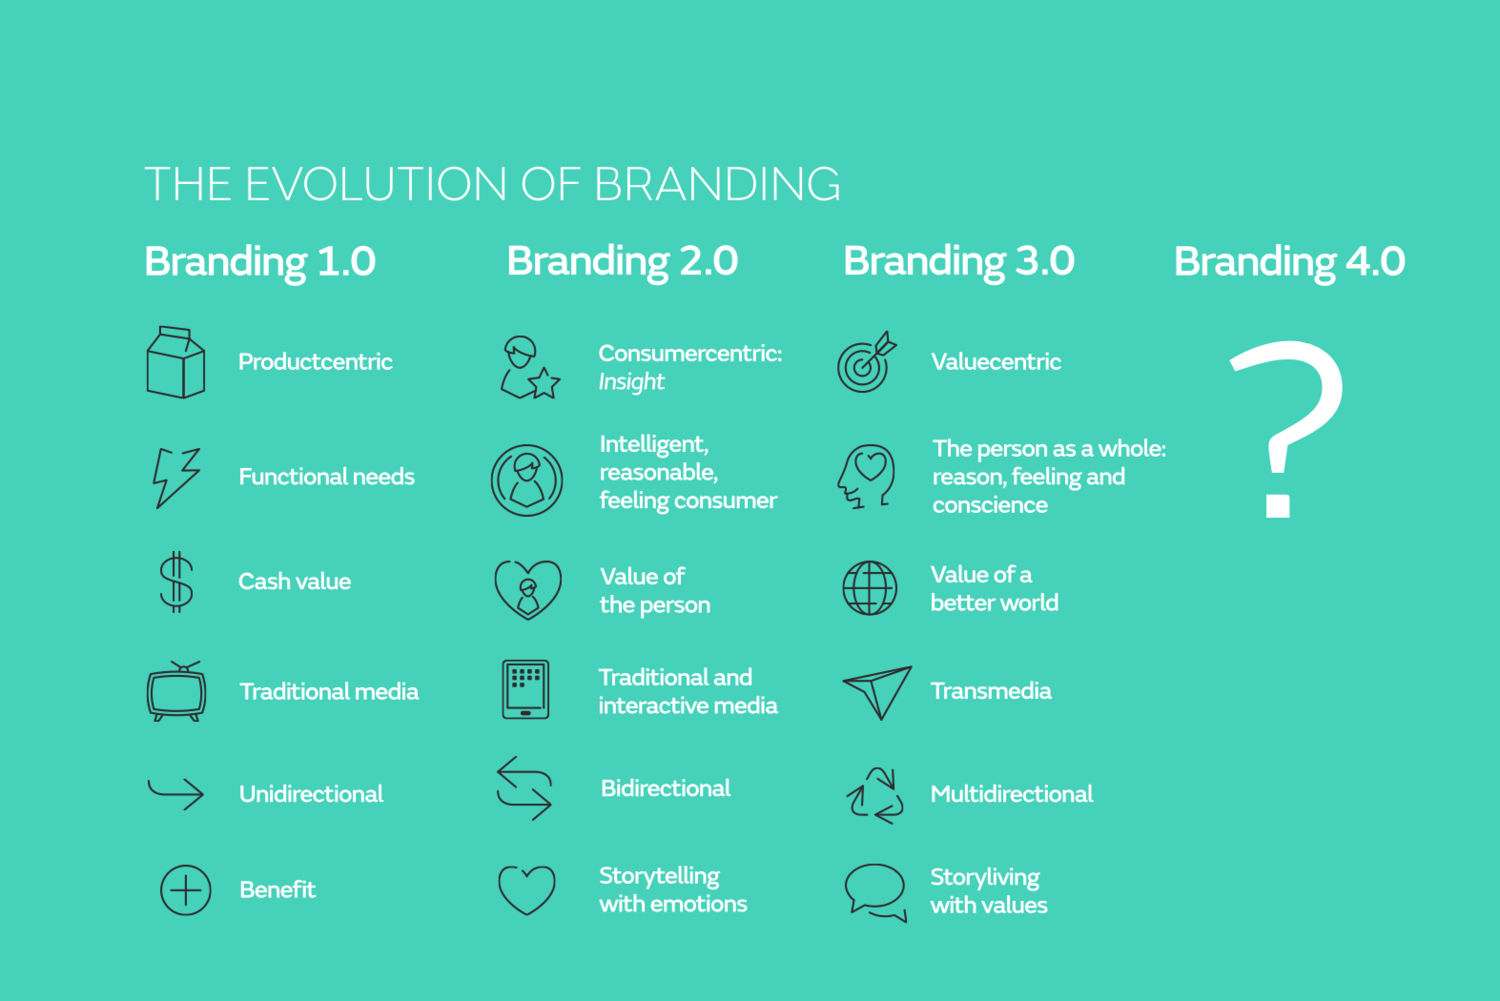 The branding of today and the future | Batllegroup